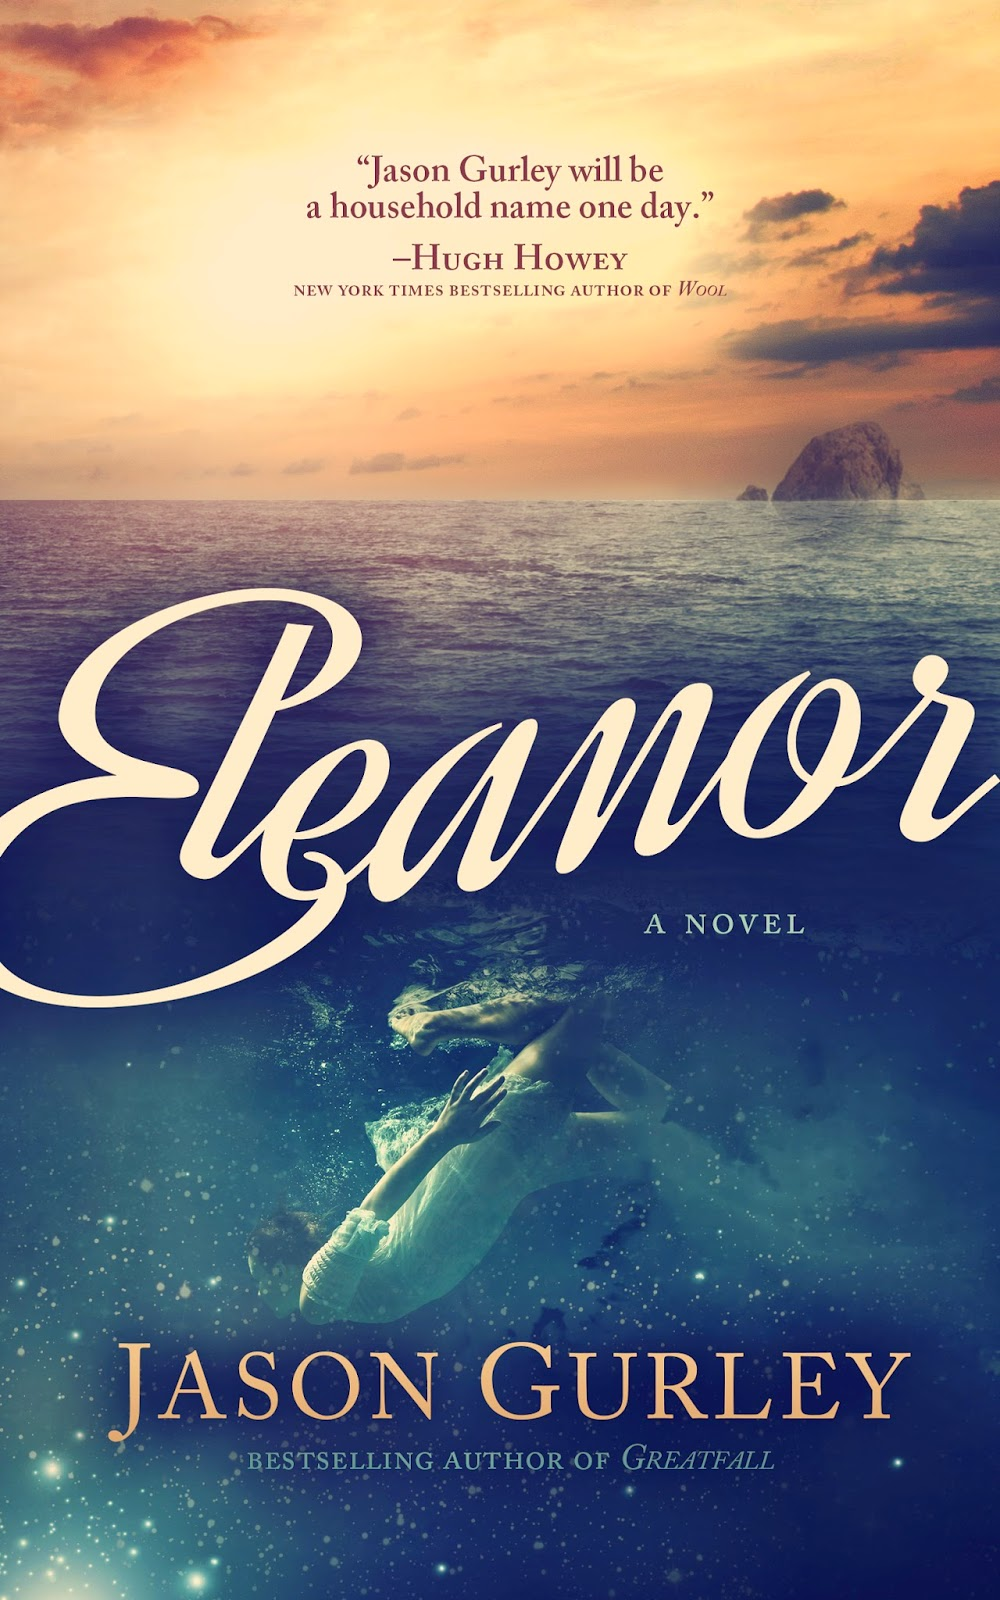 https://www.goodreads.com/book/show/22081556-eleanor